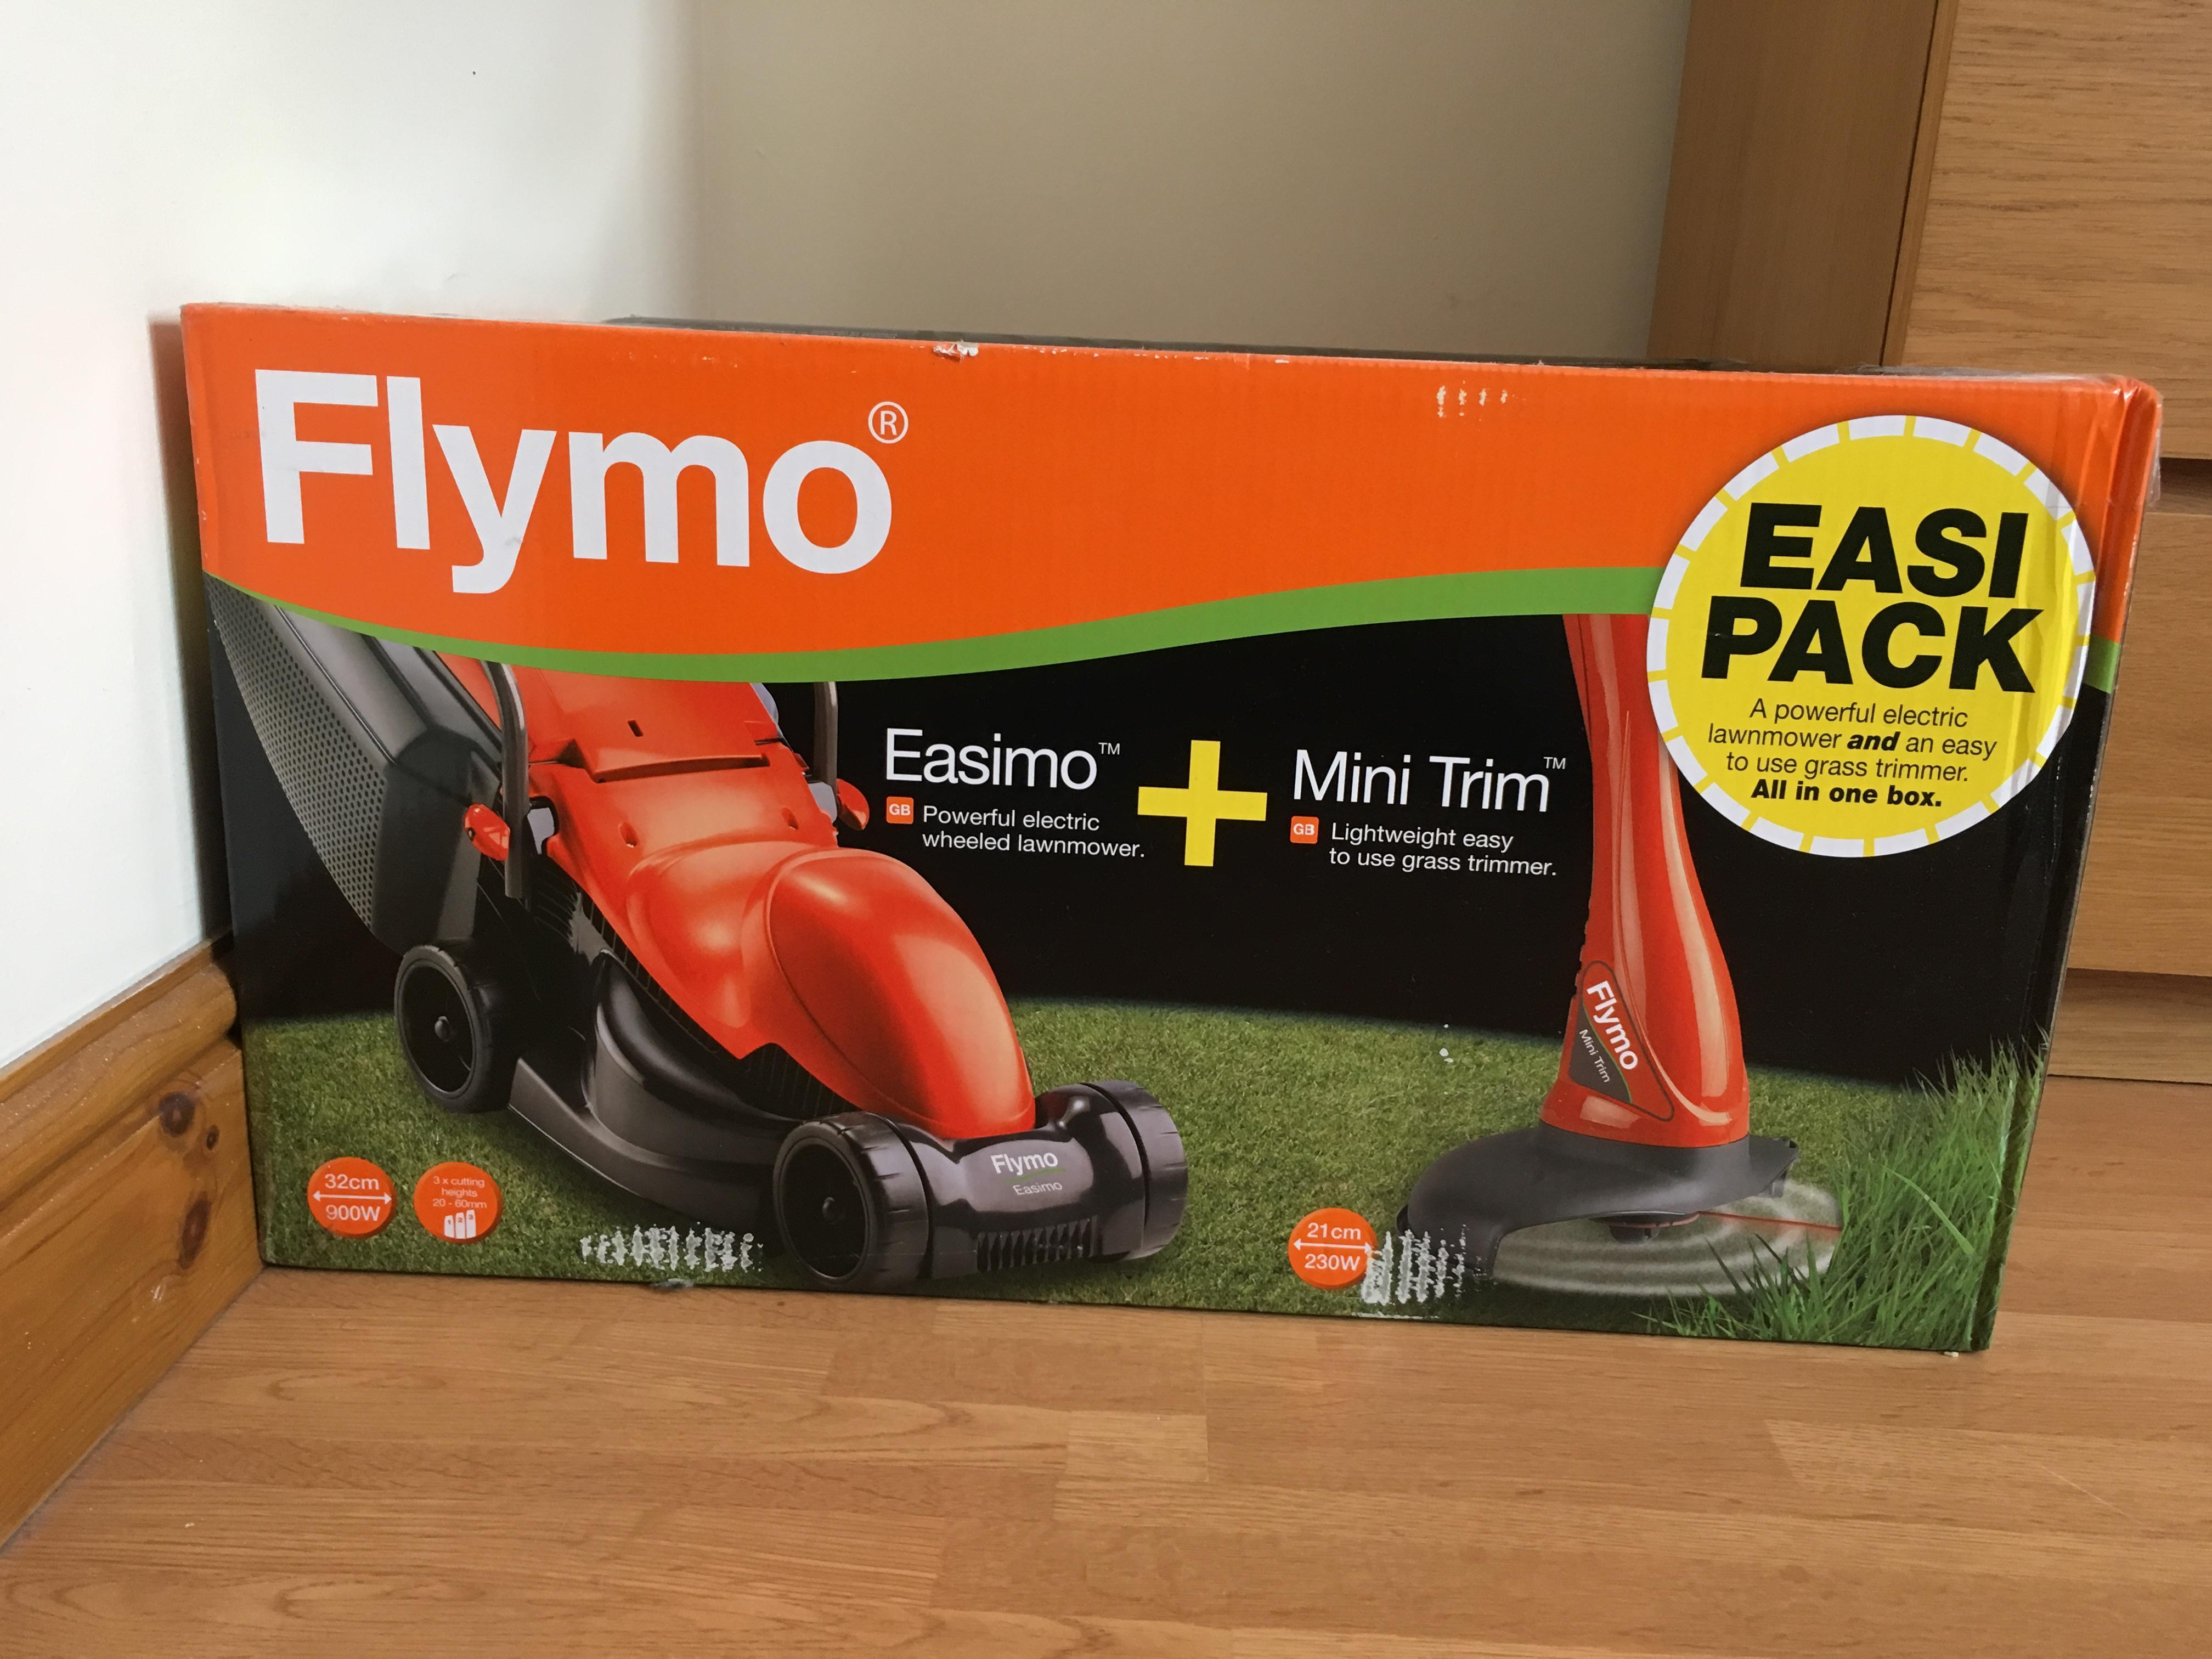 New Flymo Easimo Lawnmower and Grass Trimmer